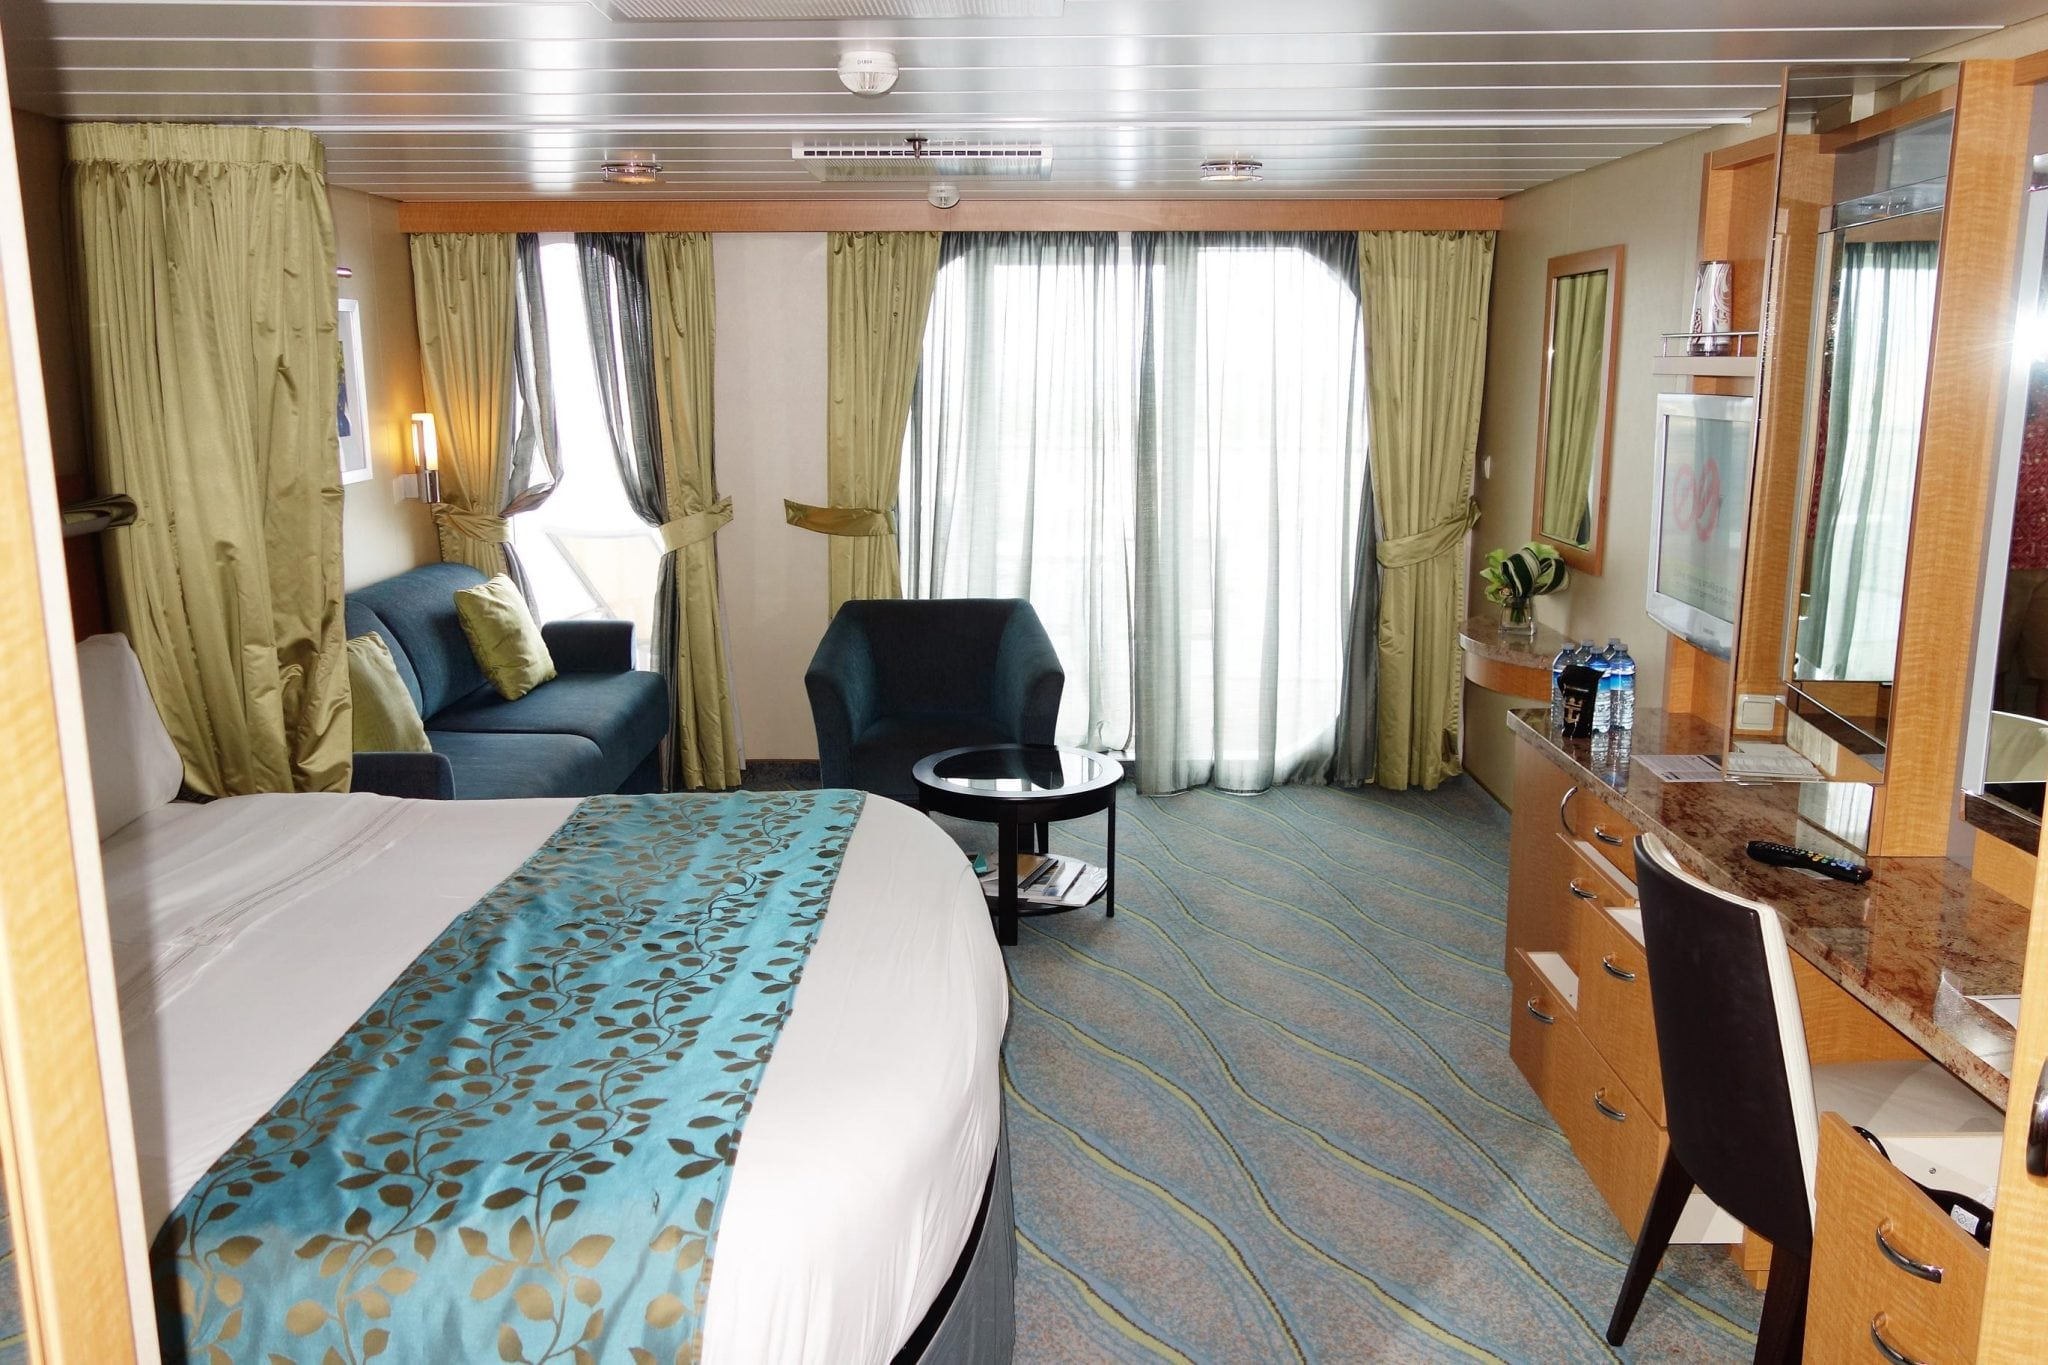 Our Latest Stateroom Review Oasis Of The Seas Junior Suite